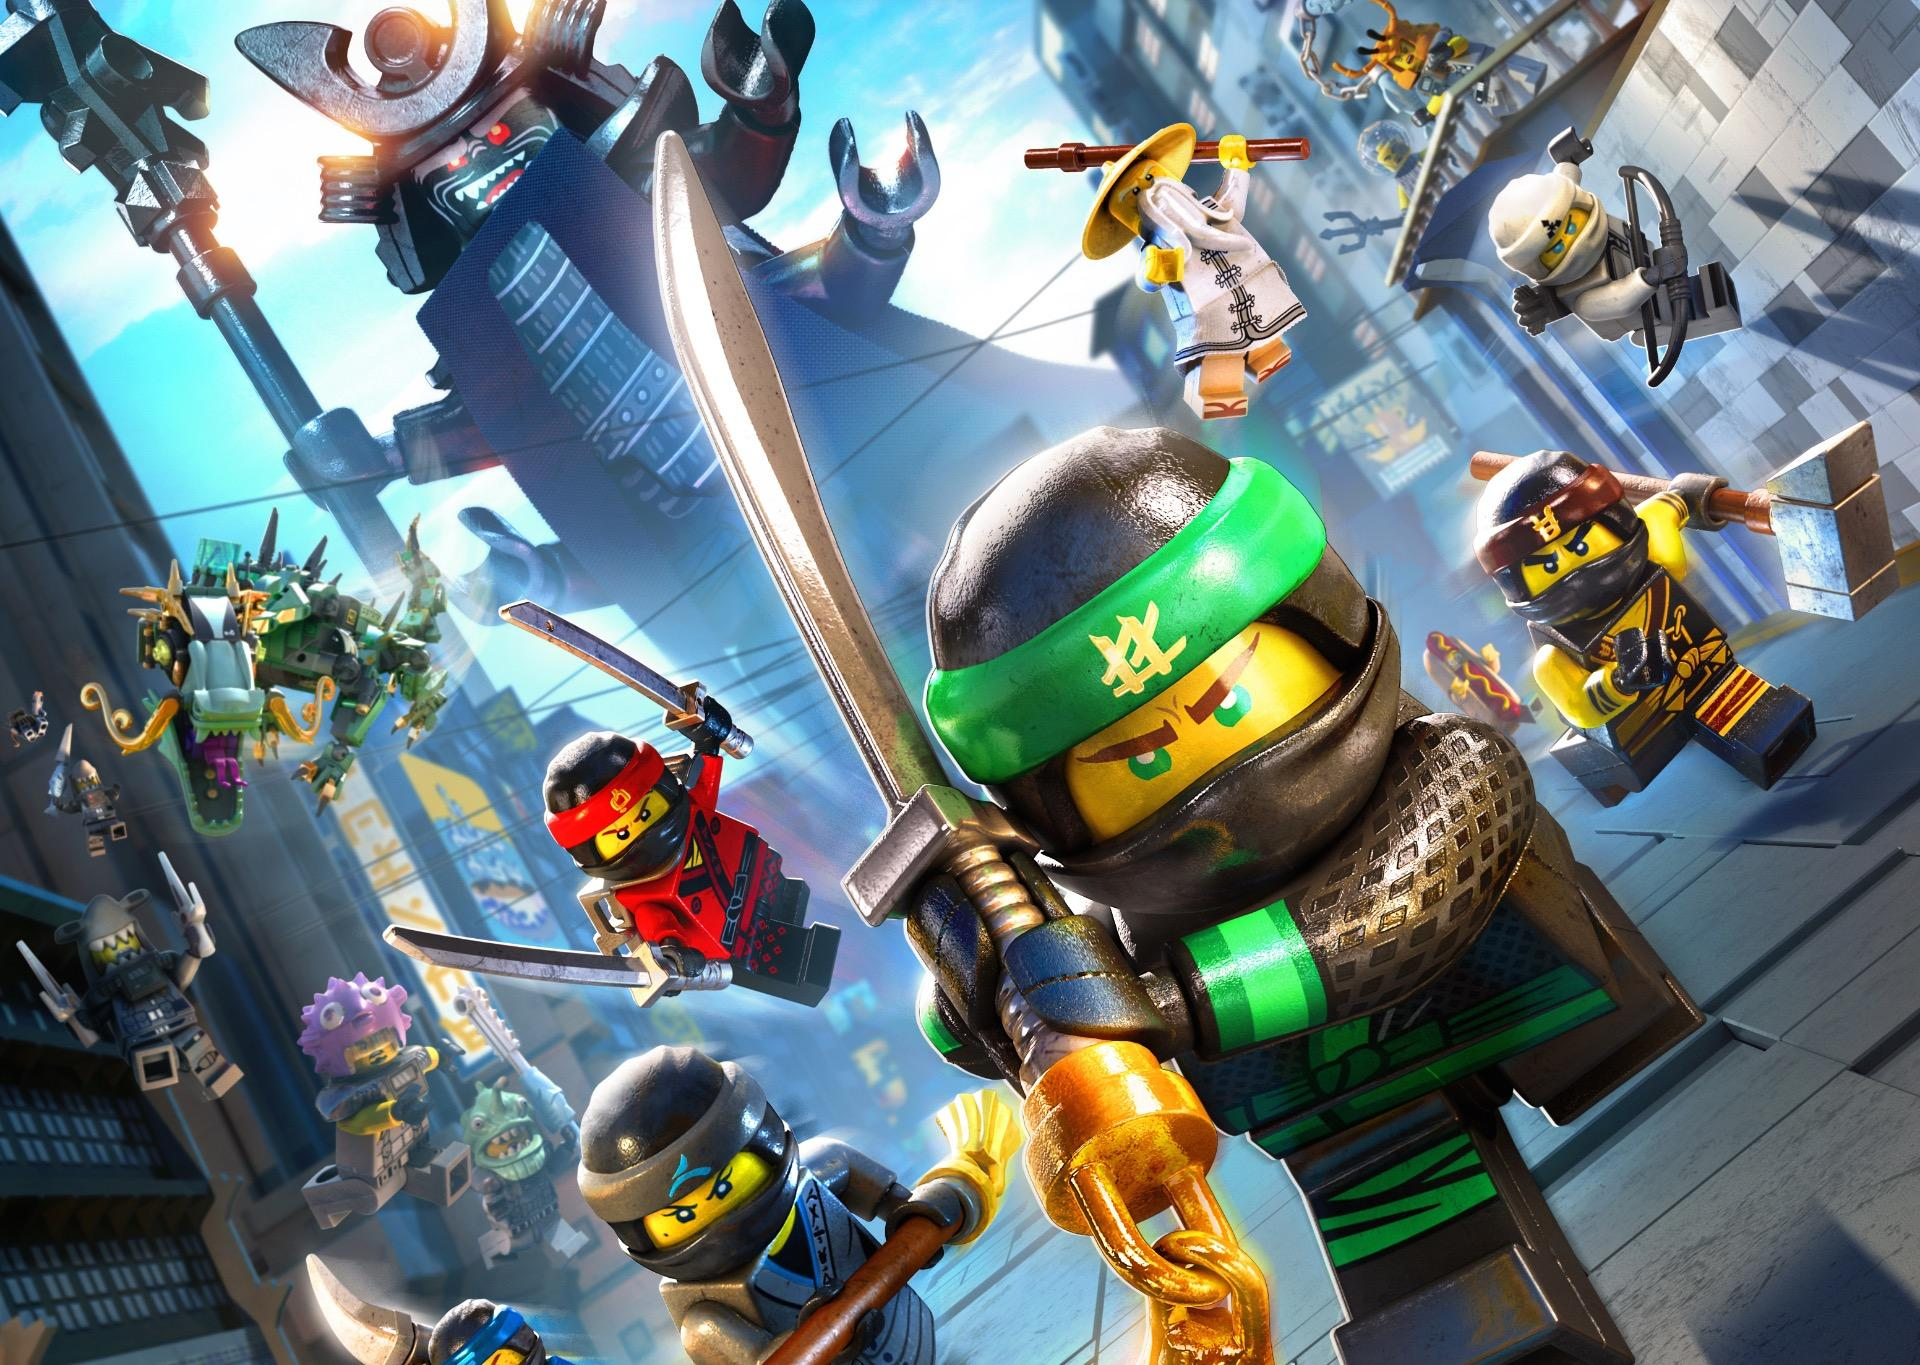 New Lego Games For Ps3 : New trailer released for the lego ninjago movie video game